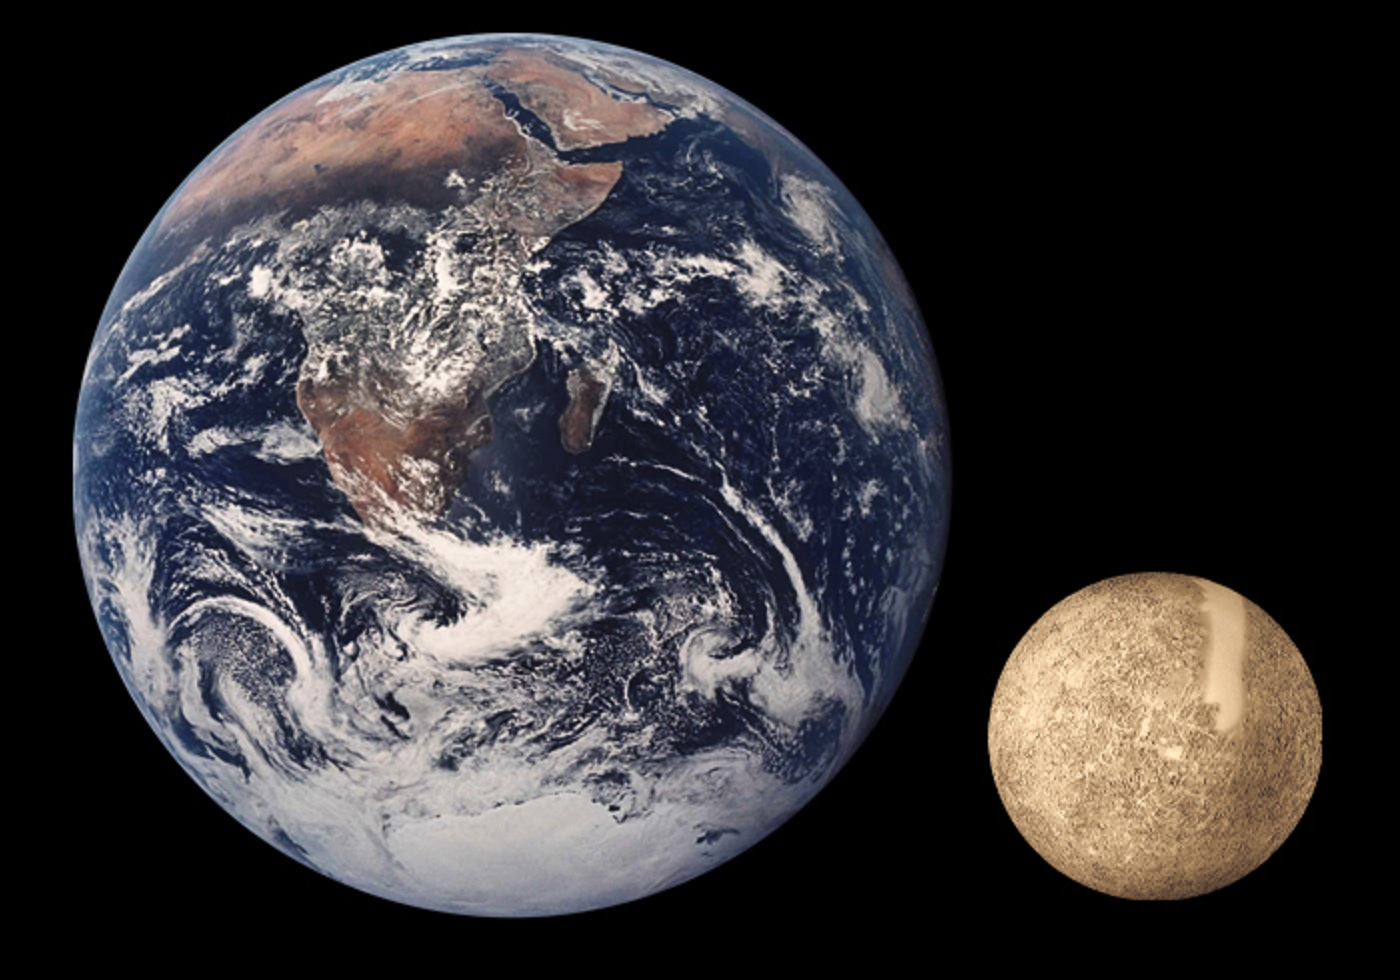 mercury compared to earth